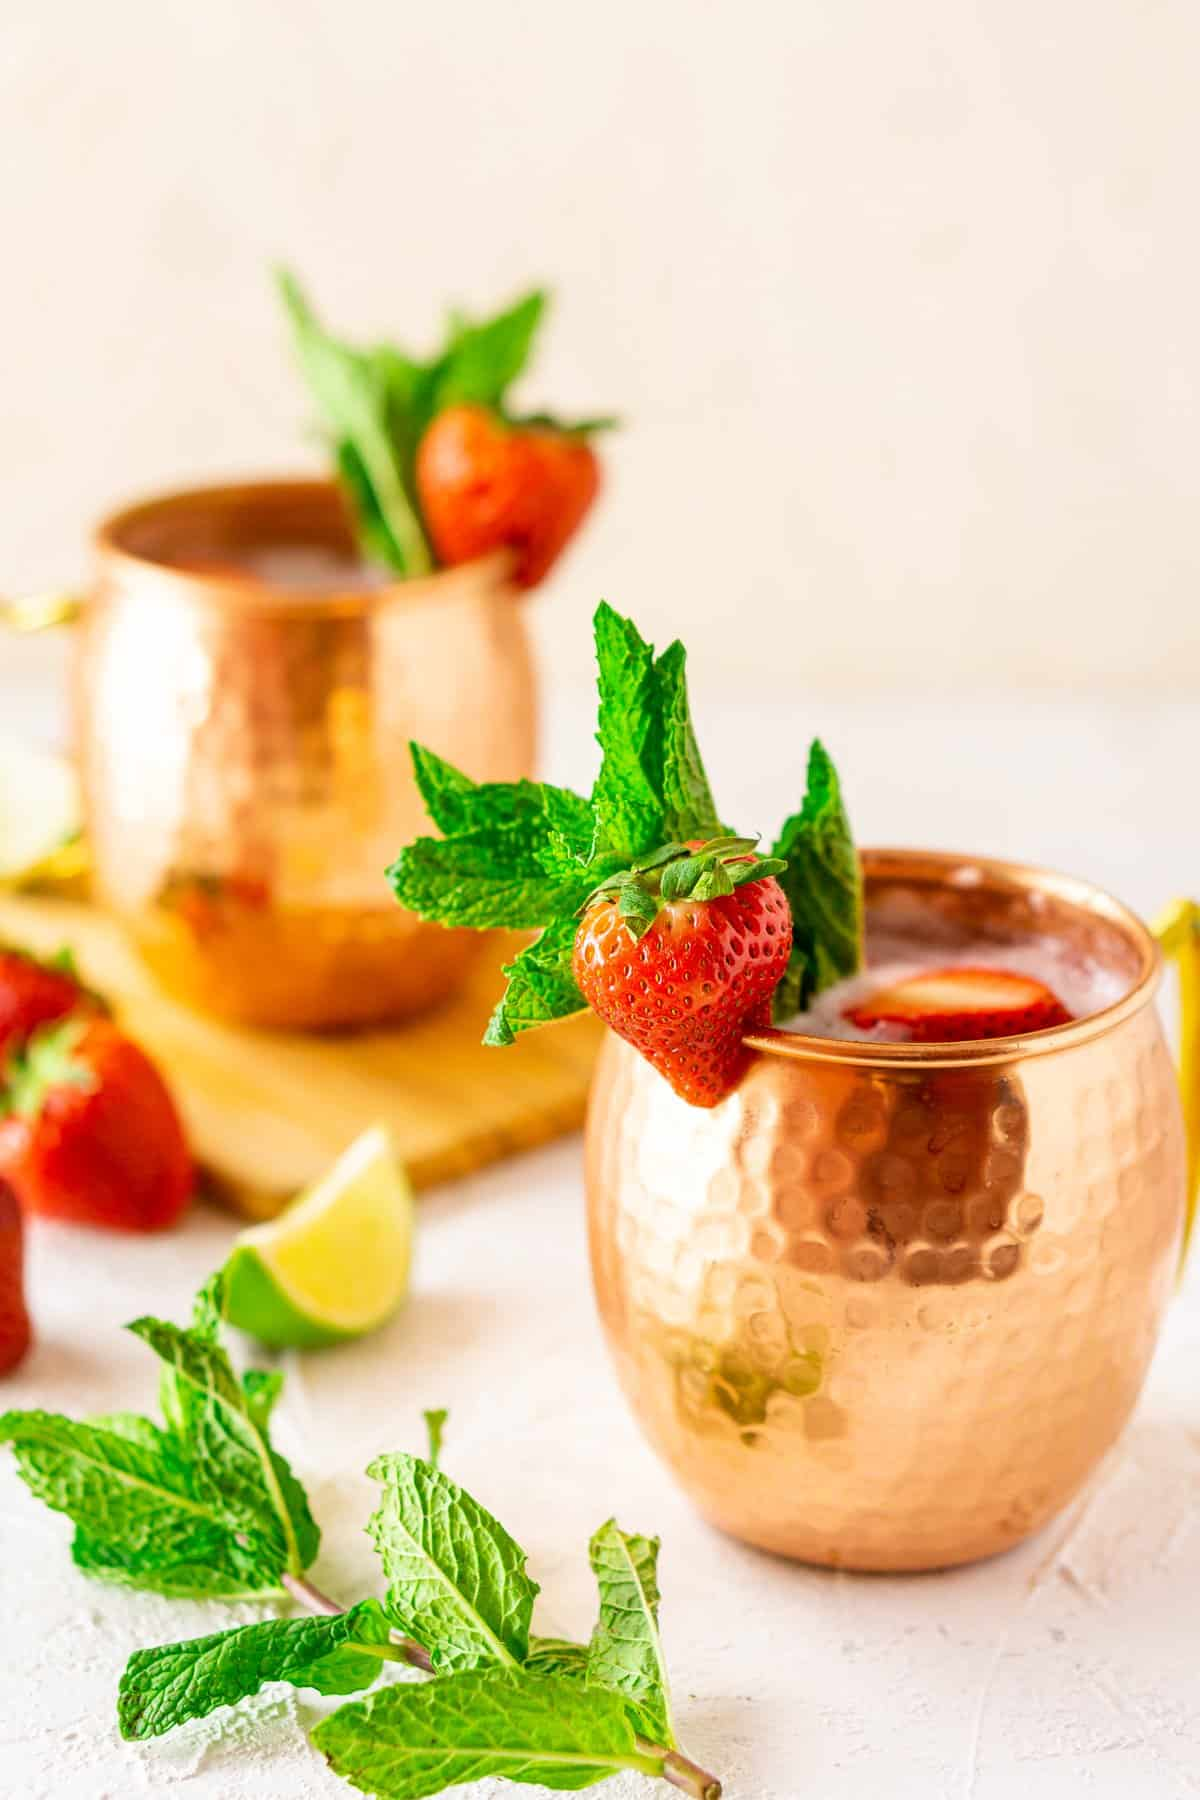 Two strawberry Moscow mules in copper mugs with fresh mint, lime slices and strawberries on the side.